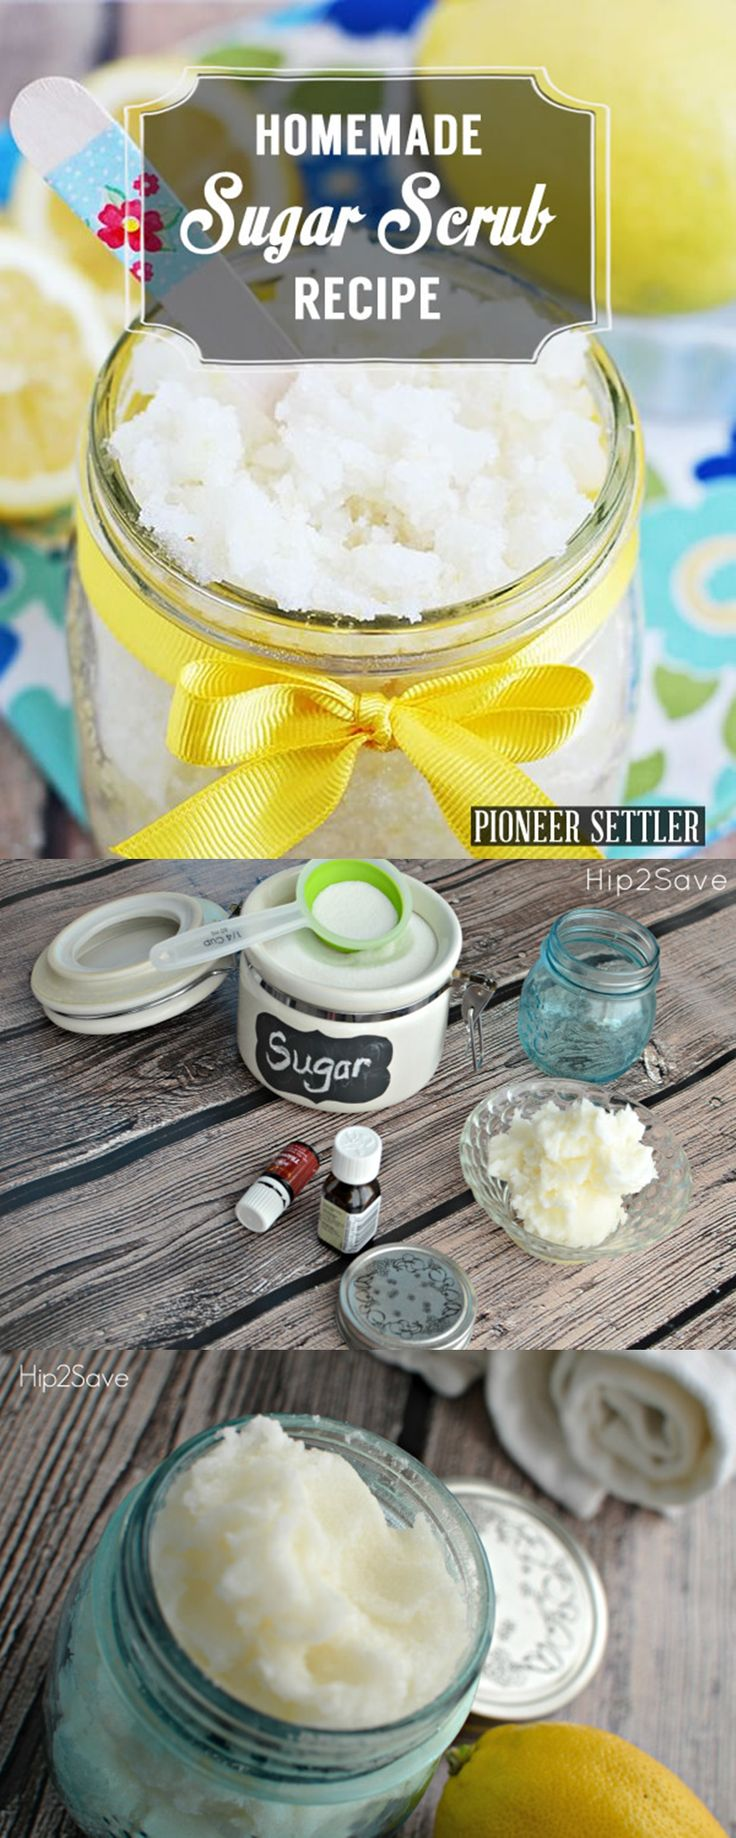 DIY Homemade Sugar Scrub Recipe | Easy and Cheap DIY Mother's Day Gift from Teens by DIY Ready at  http://diyready.com/diy-gifts-mothers-day-ideas/